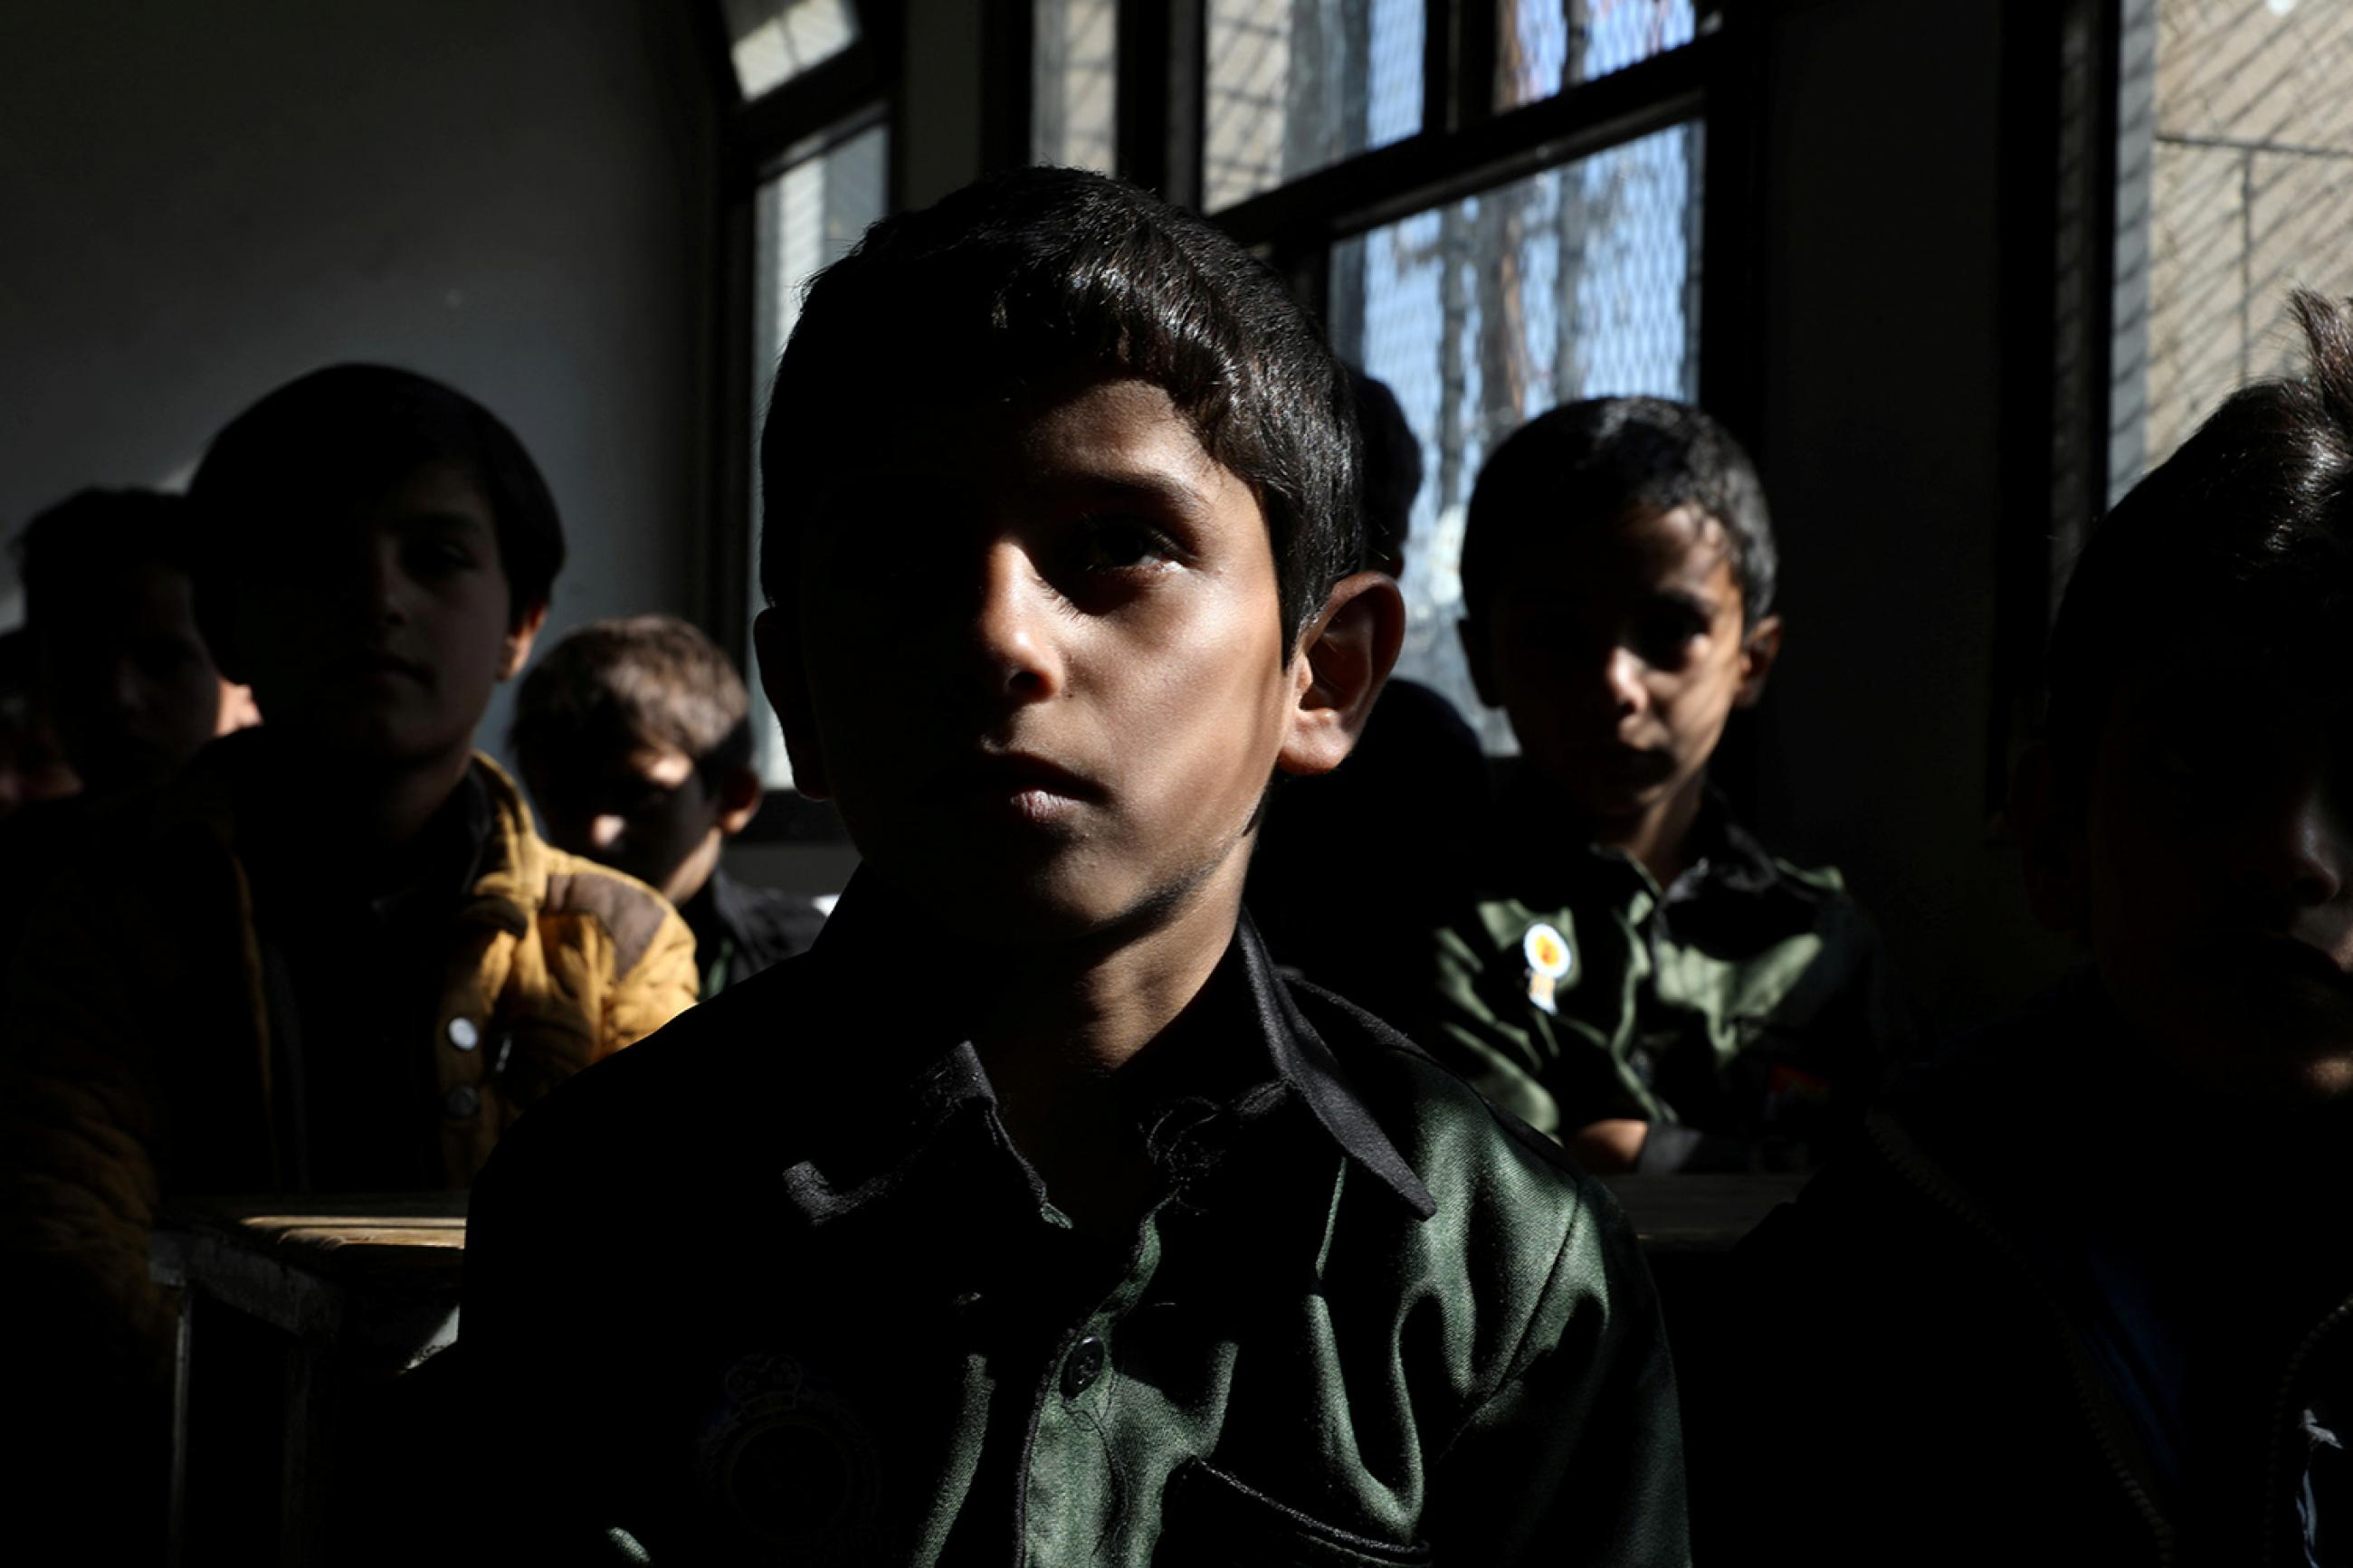 Students attend a class at the beginning of the school year amid fears of the spread of the coronavirus disease (Covid-19) in Sanaa, Yemen October 18, 2020. The photo shows a darkened classroom with several students facing the camera. REUTERS/Khaled Abdullah